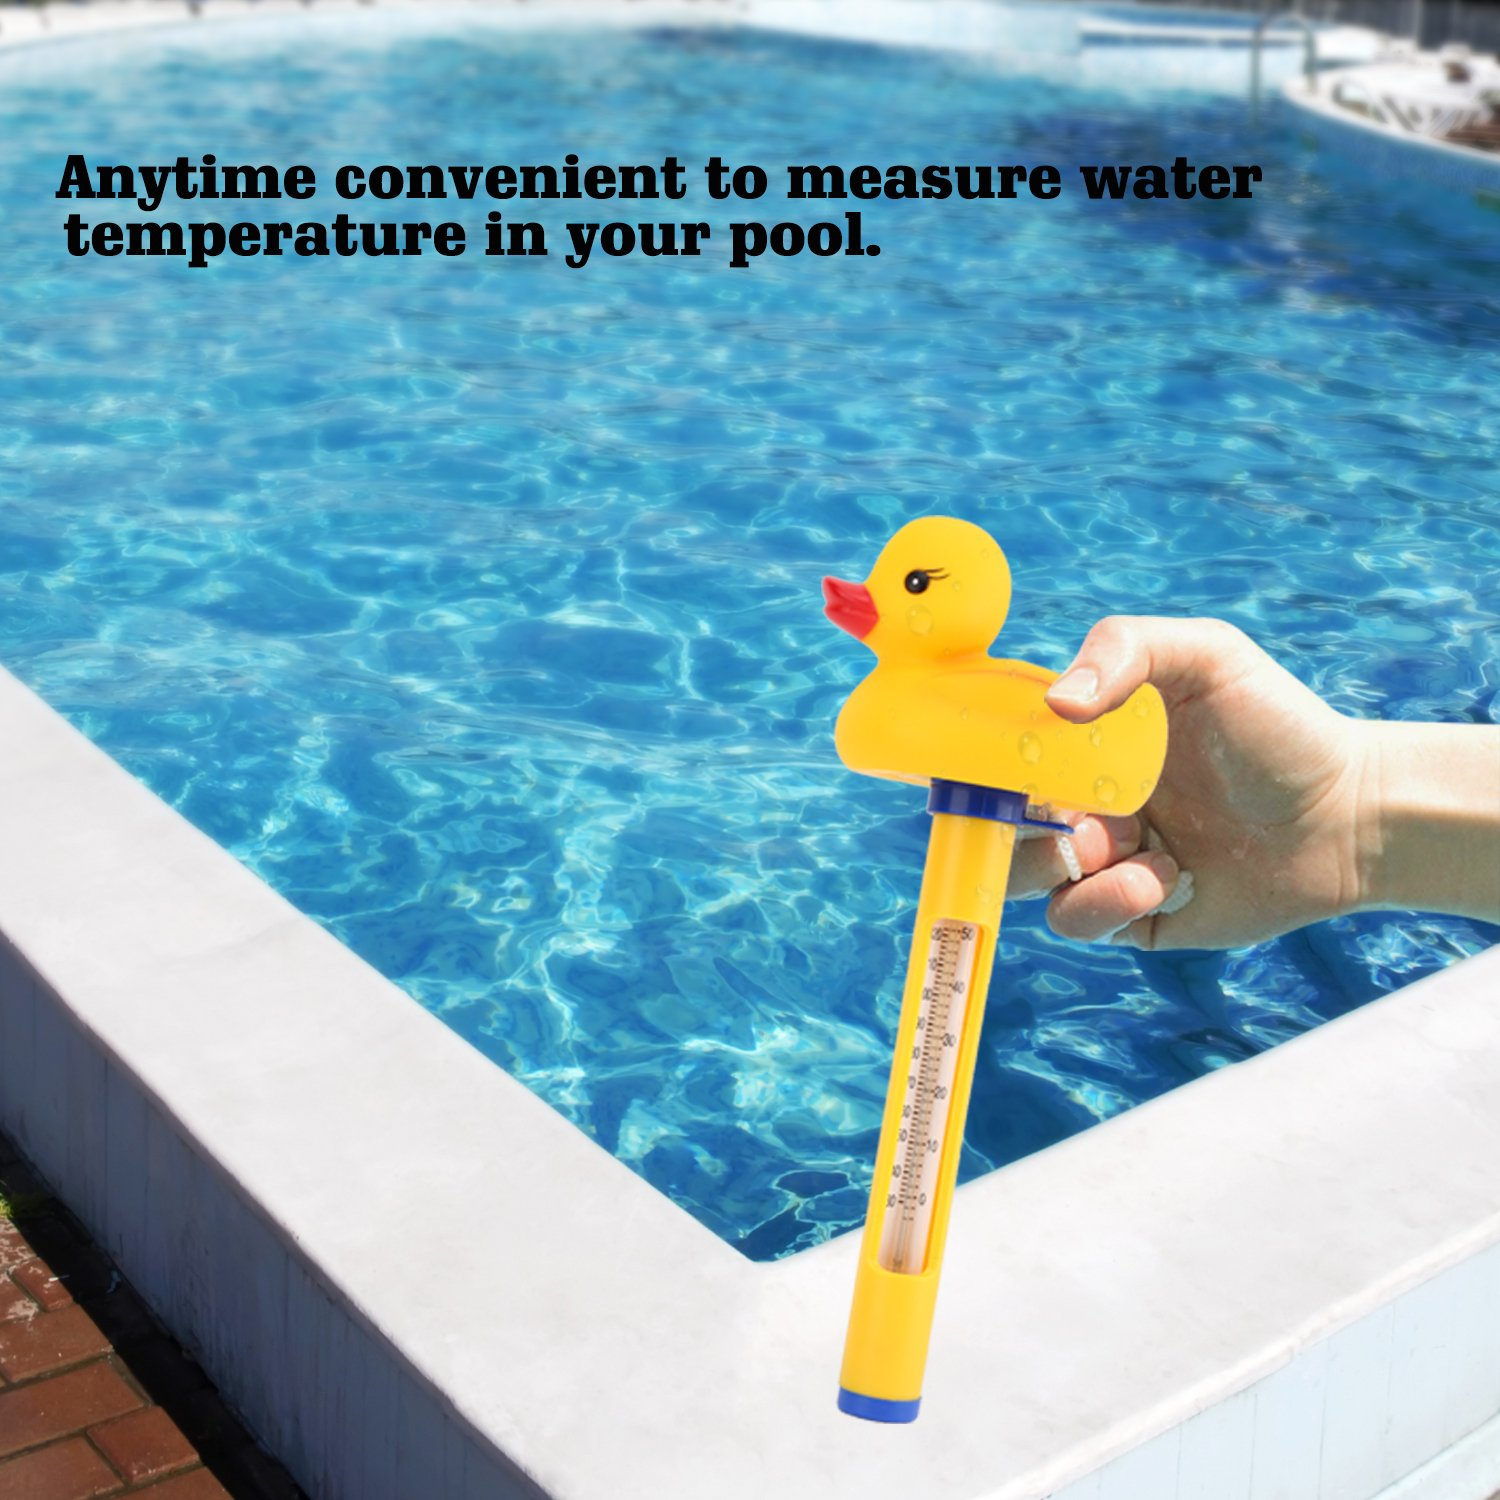 Housolution Floating Pool Thermometer, SPA Swimming Pool Thermometer, Baby Pool Cartoon Water Thermometer, Yellow Duck by Housolution (Image #3)